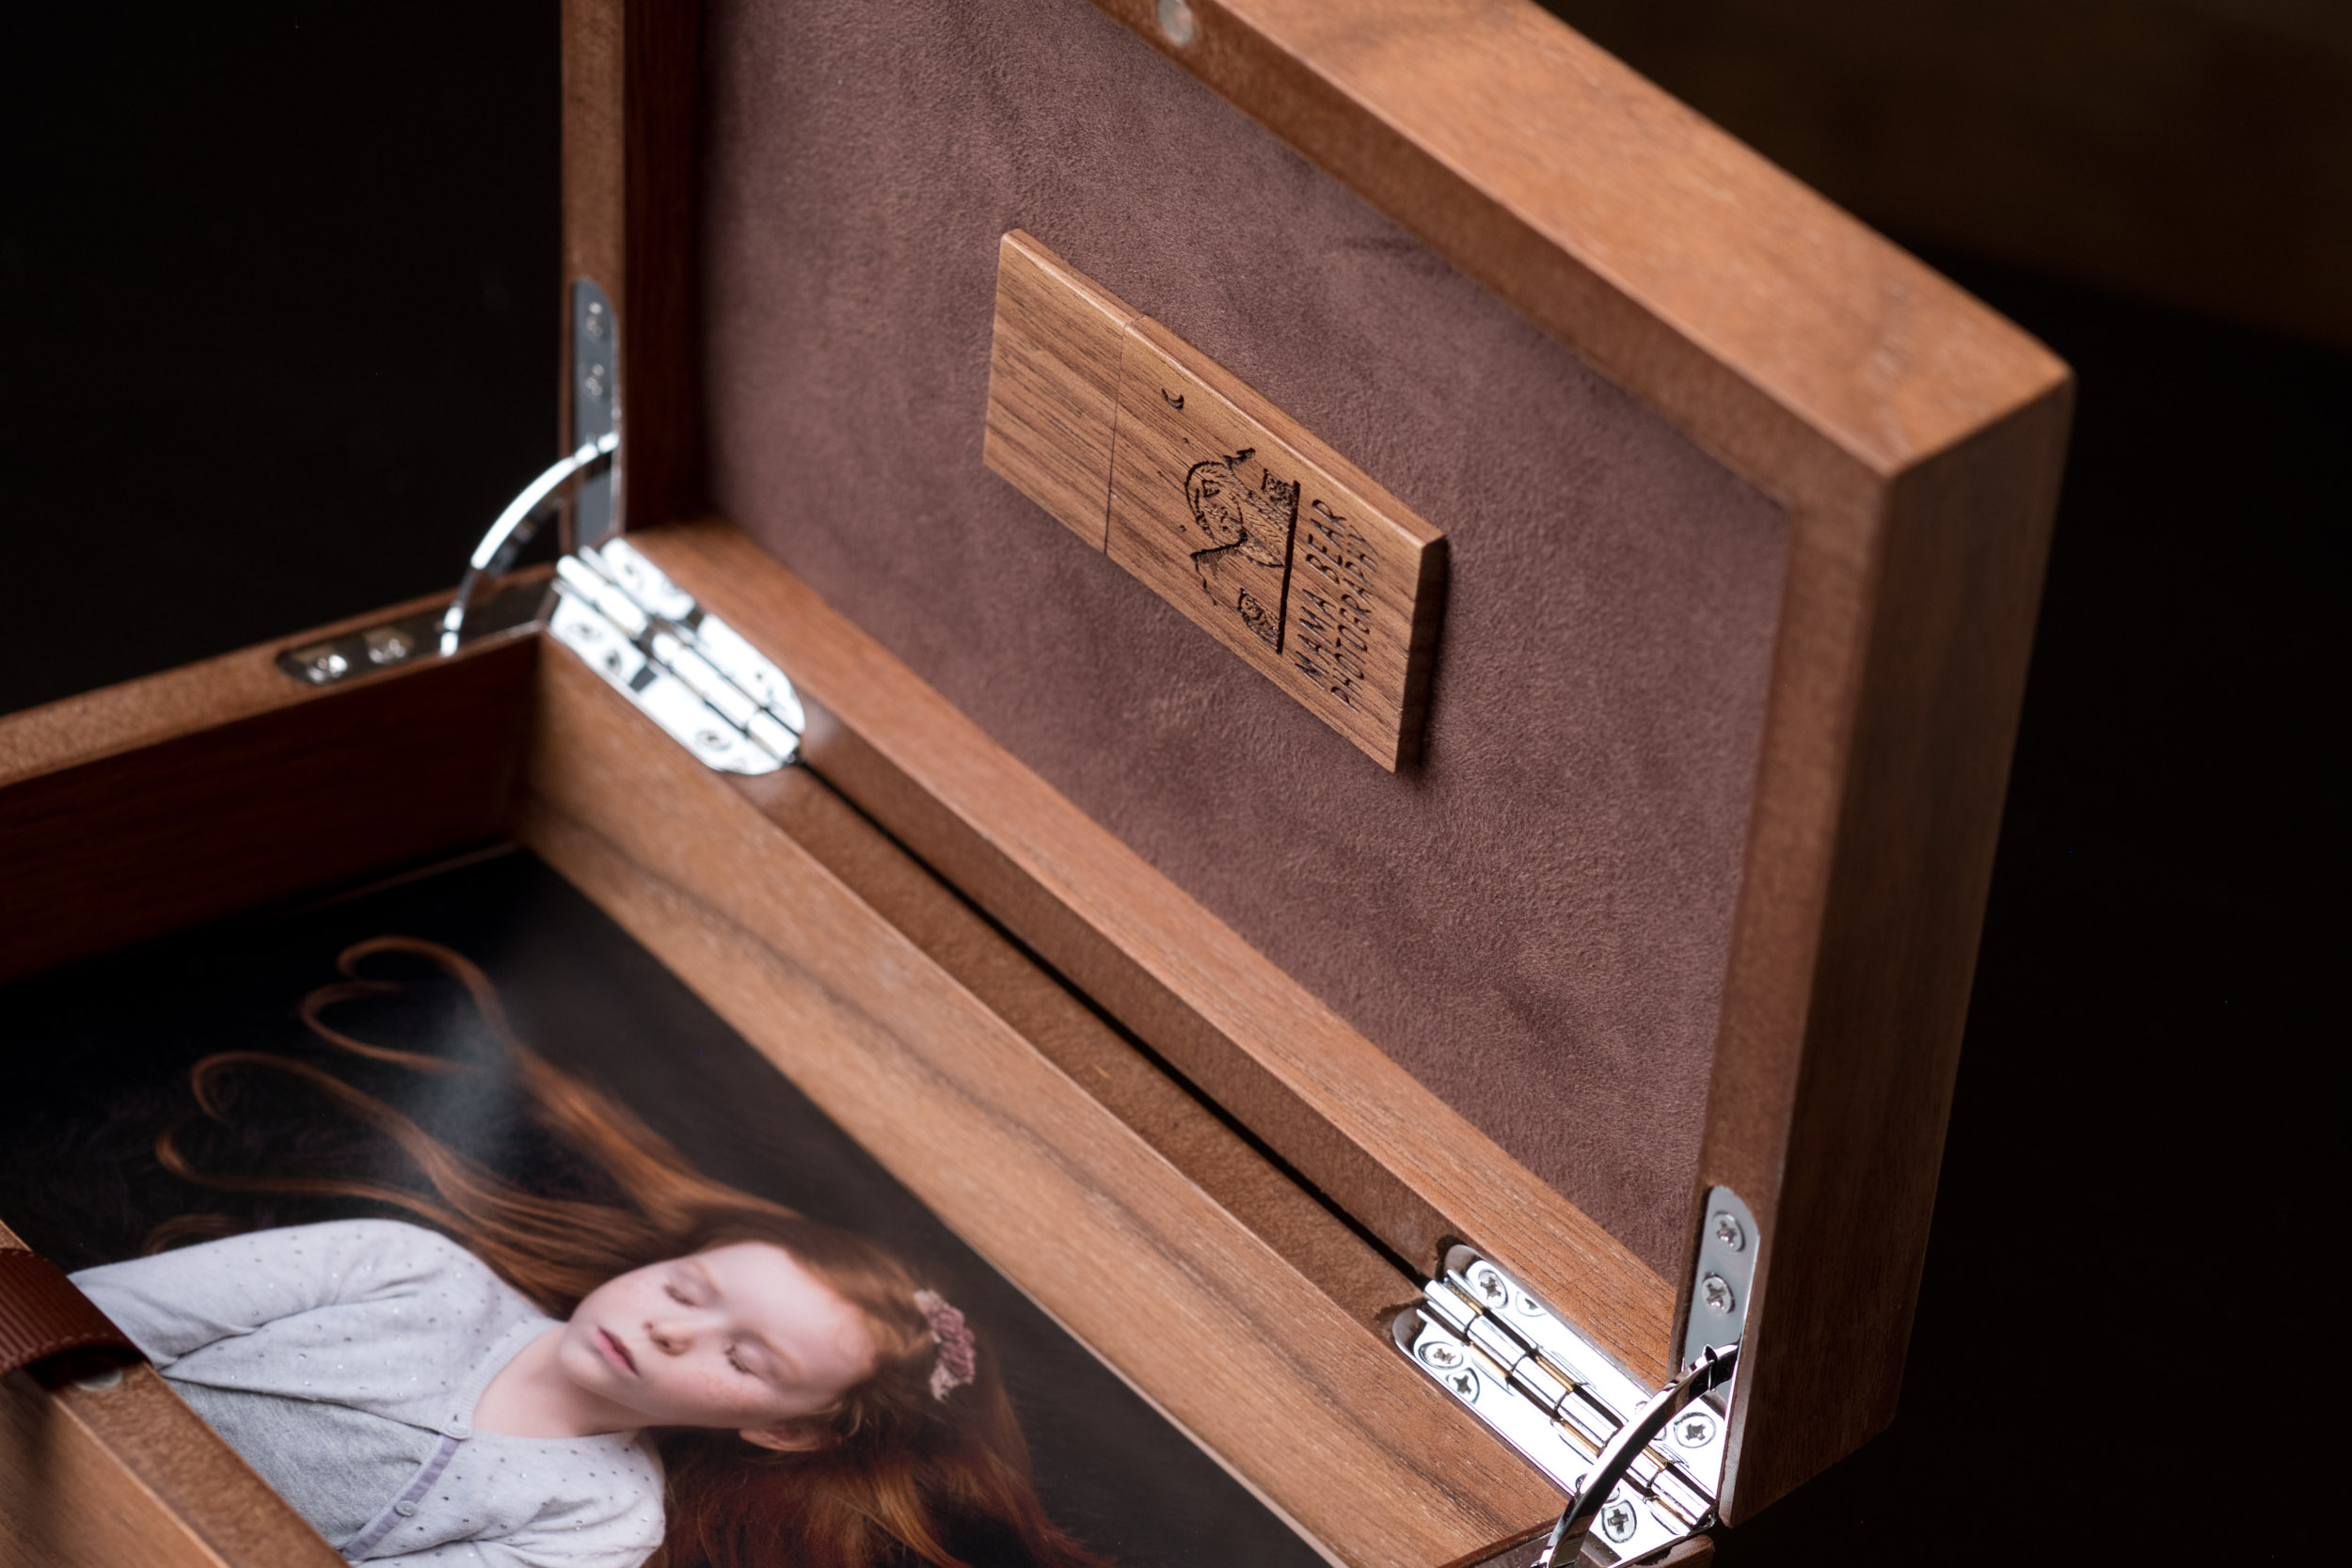 Newborn-Photography-Lincoln-Wooden-Keepsake-Box-For-Prints-007.jpg